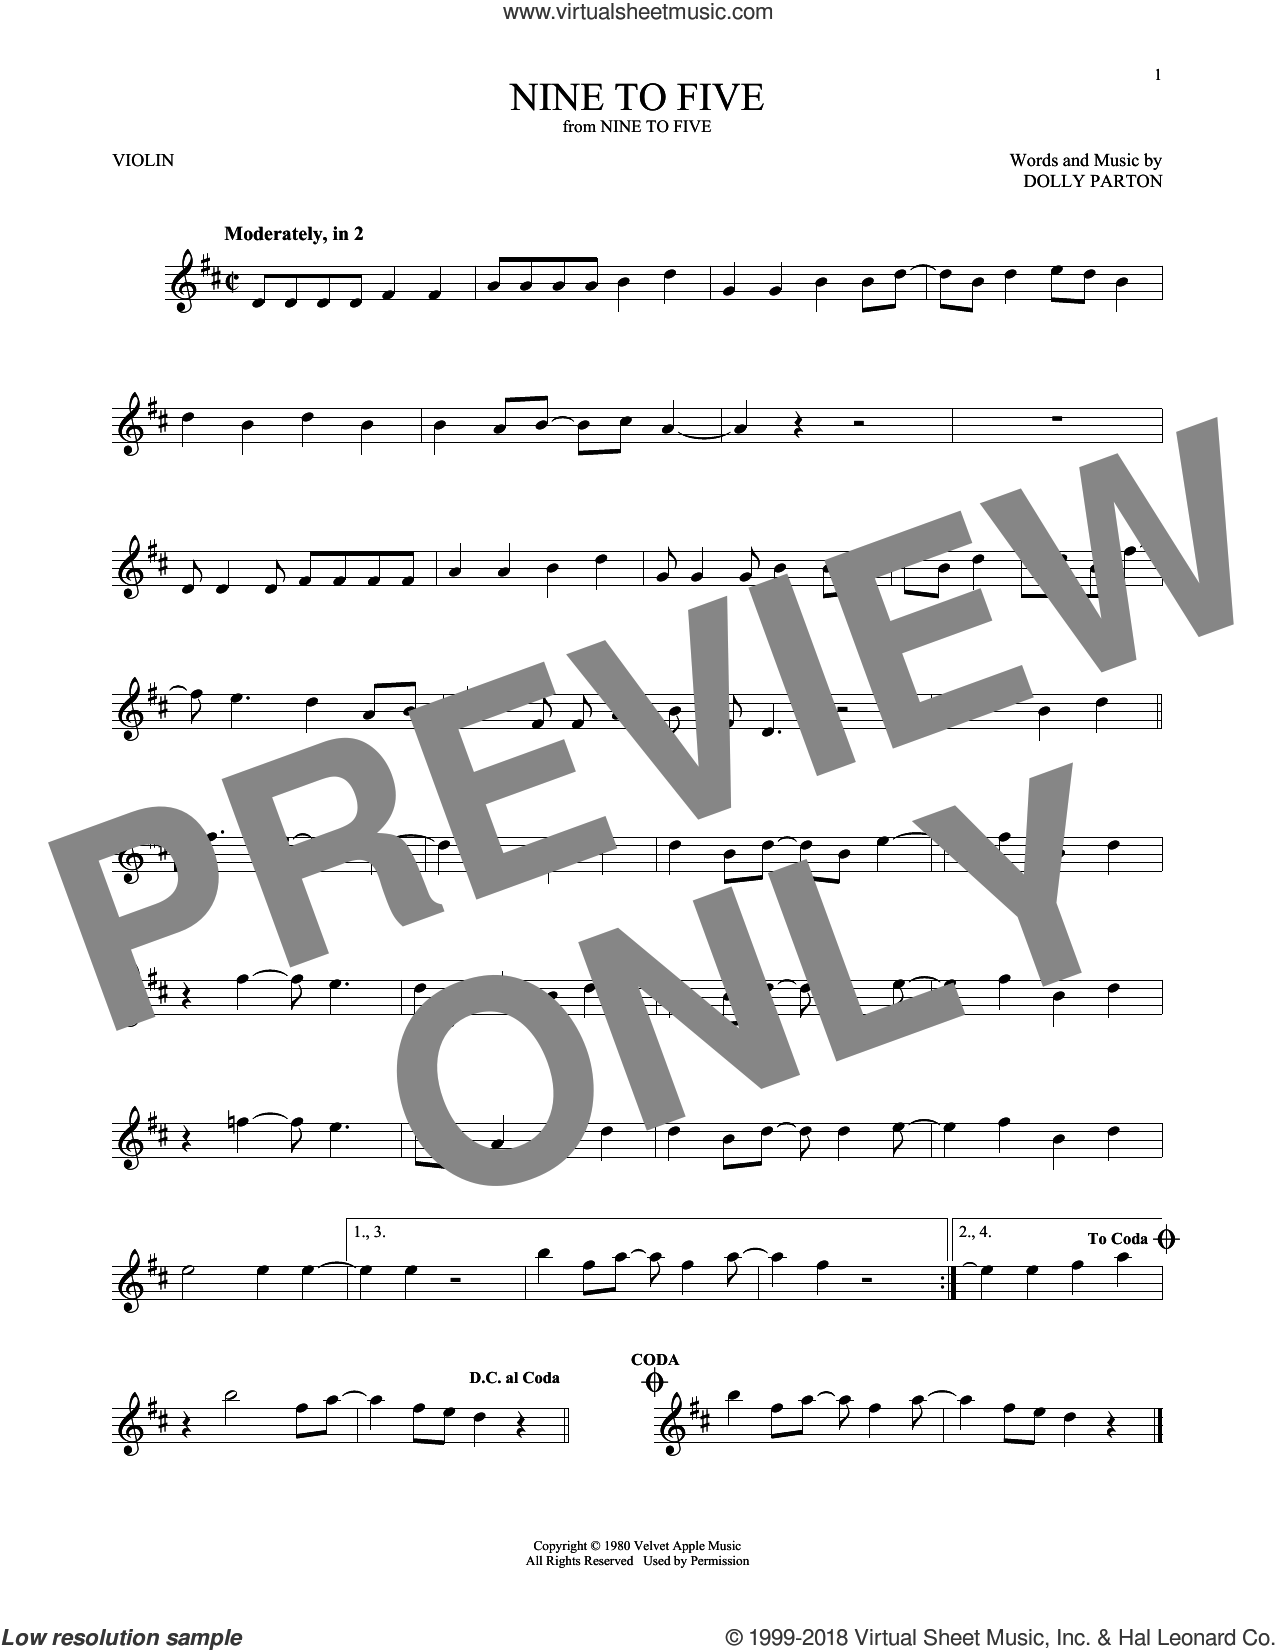 Nine To Five sheet music for violin solo by Dolly Parton, intermediate skill level